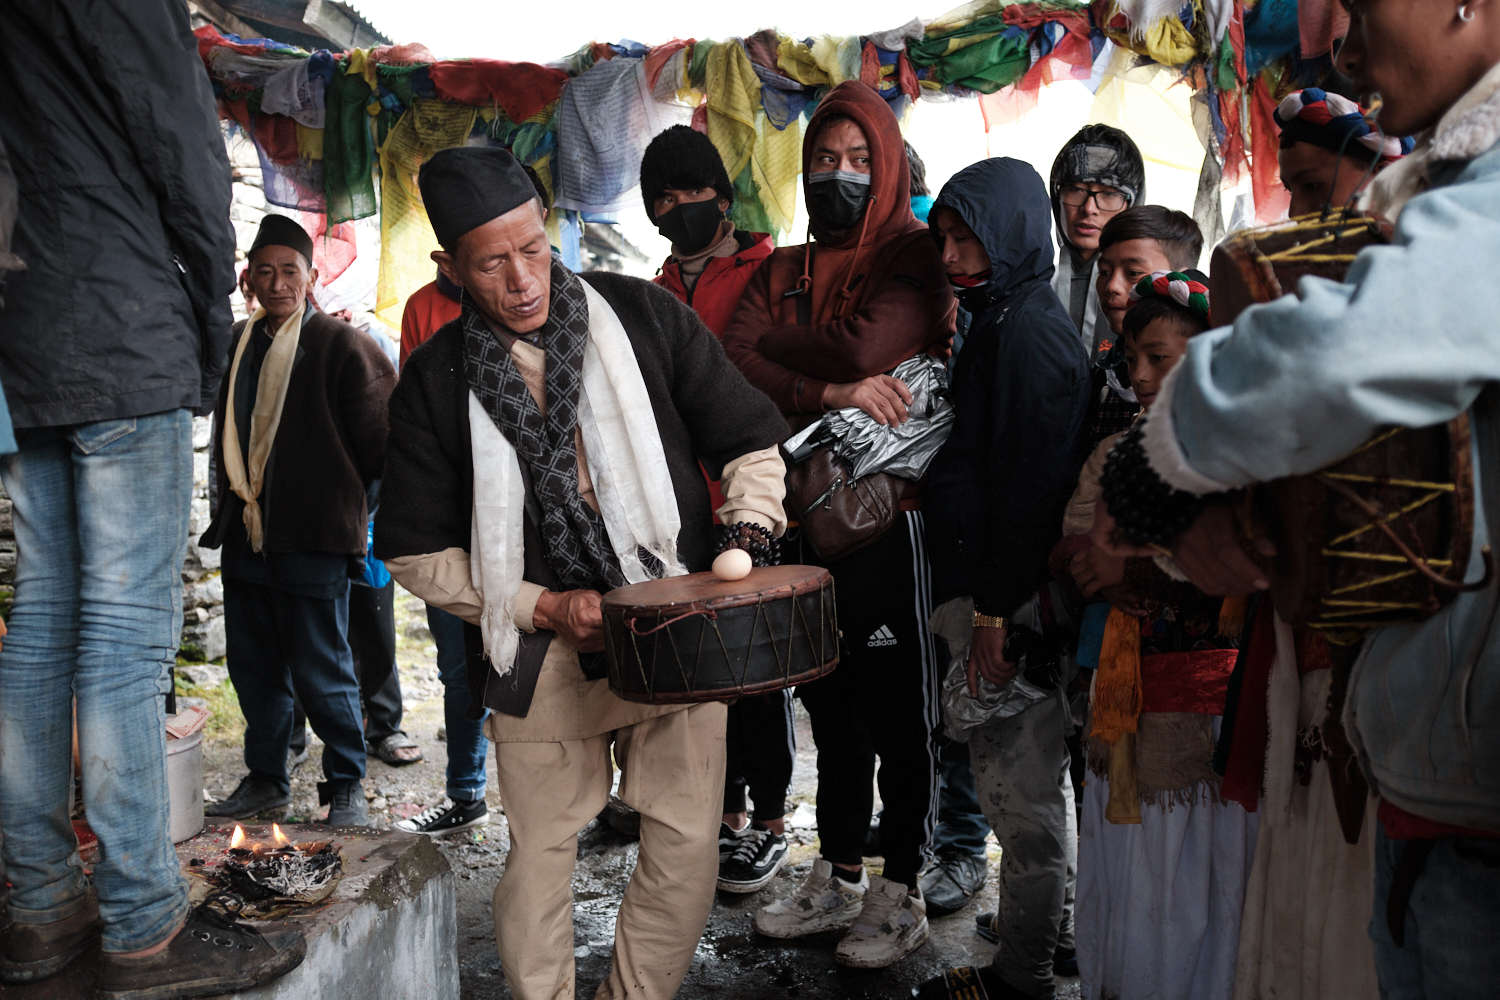 A shaman participates in a competition during the shaman festival at Gosainkunda Lake